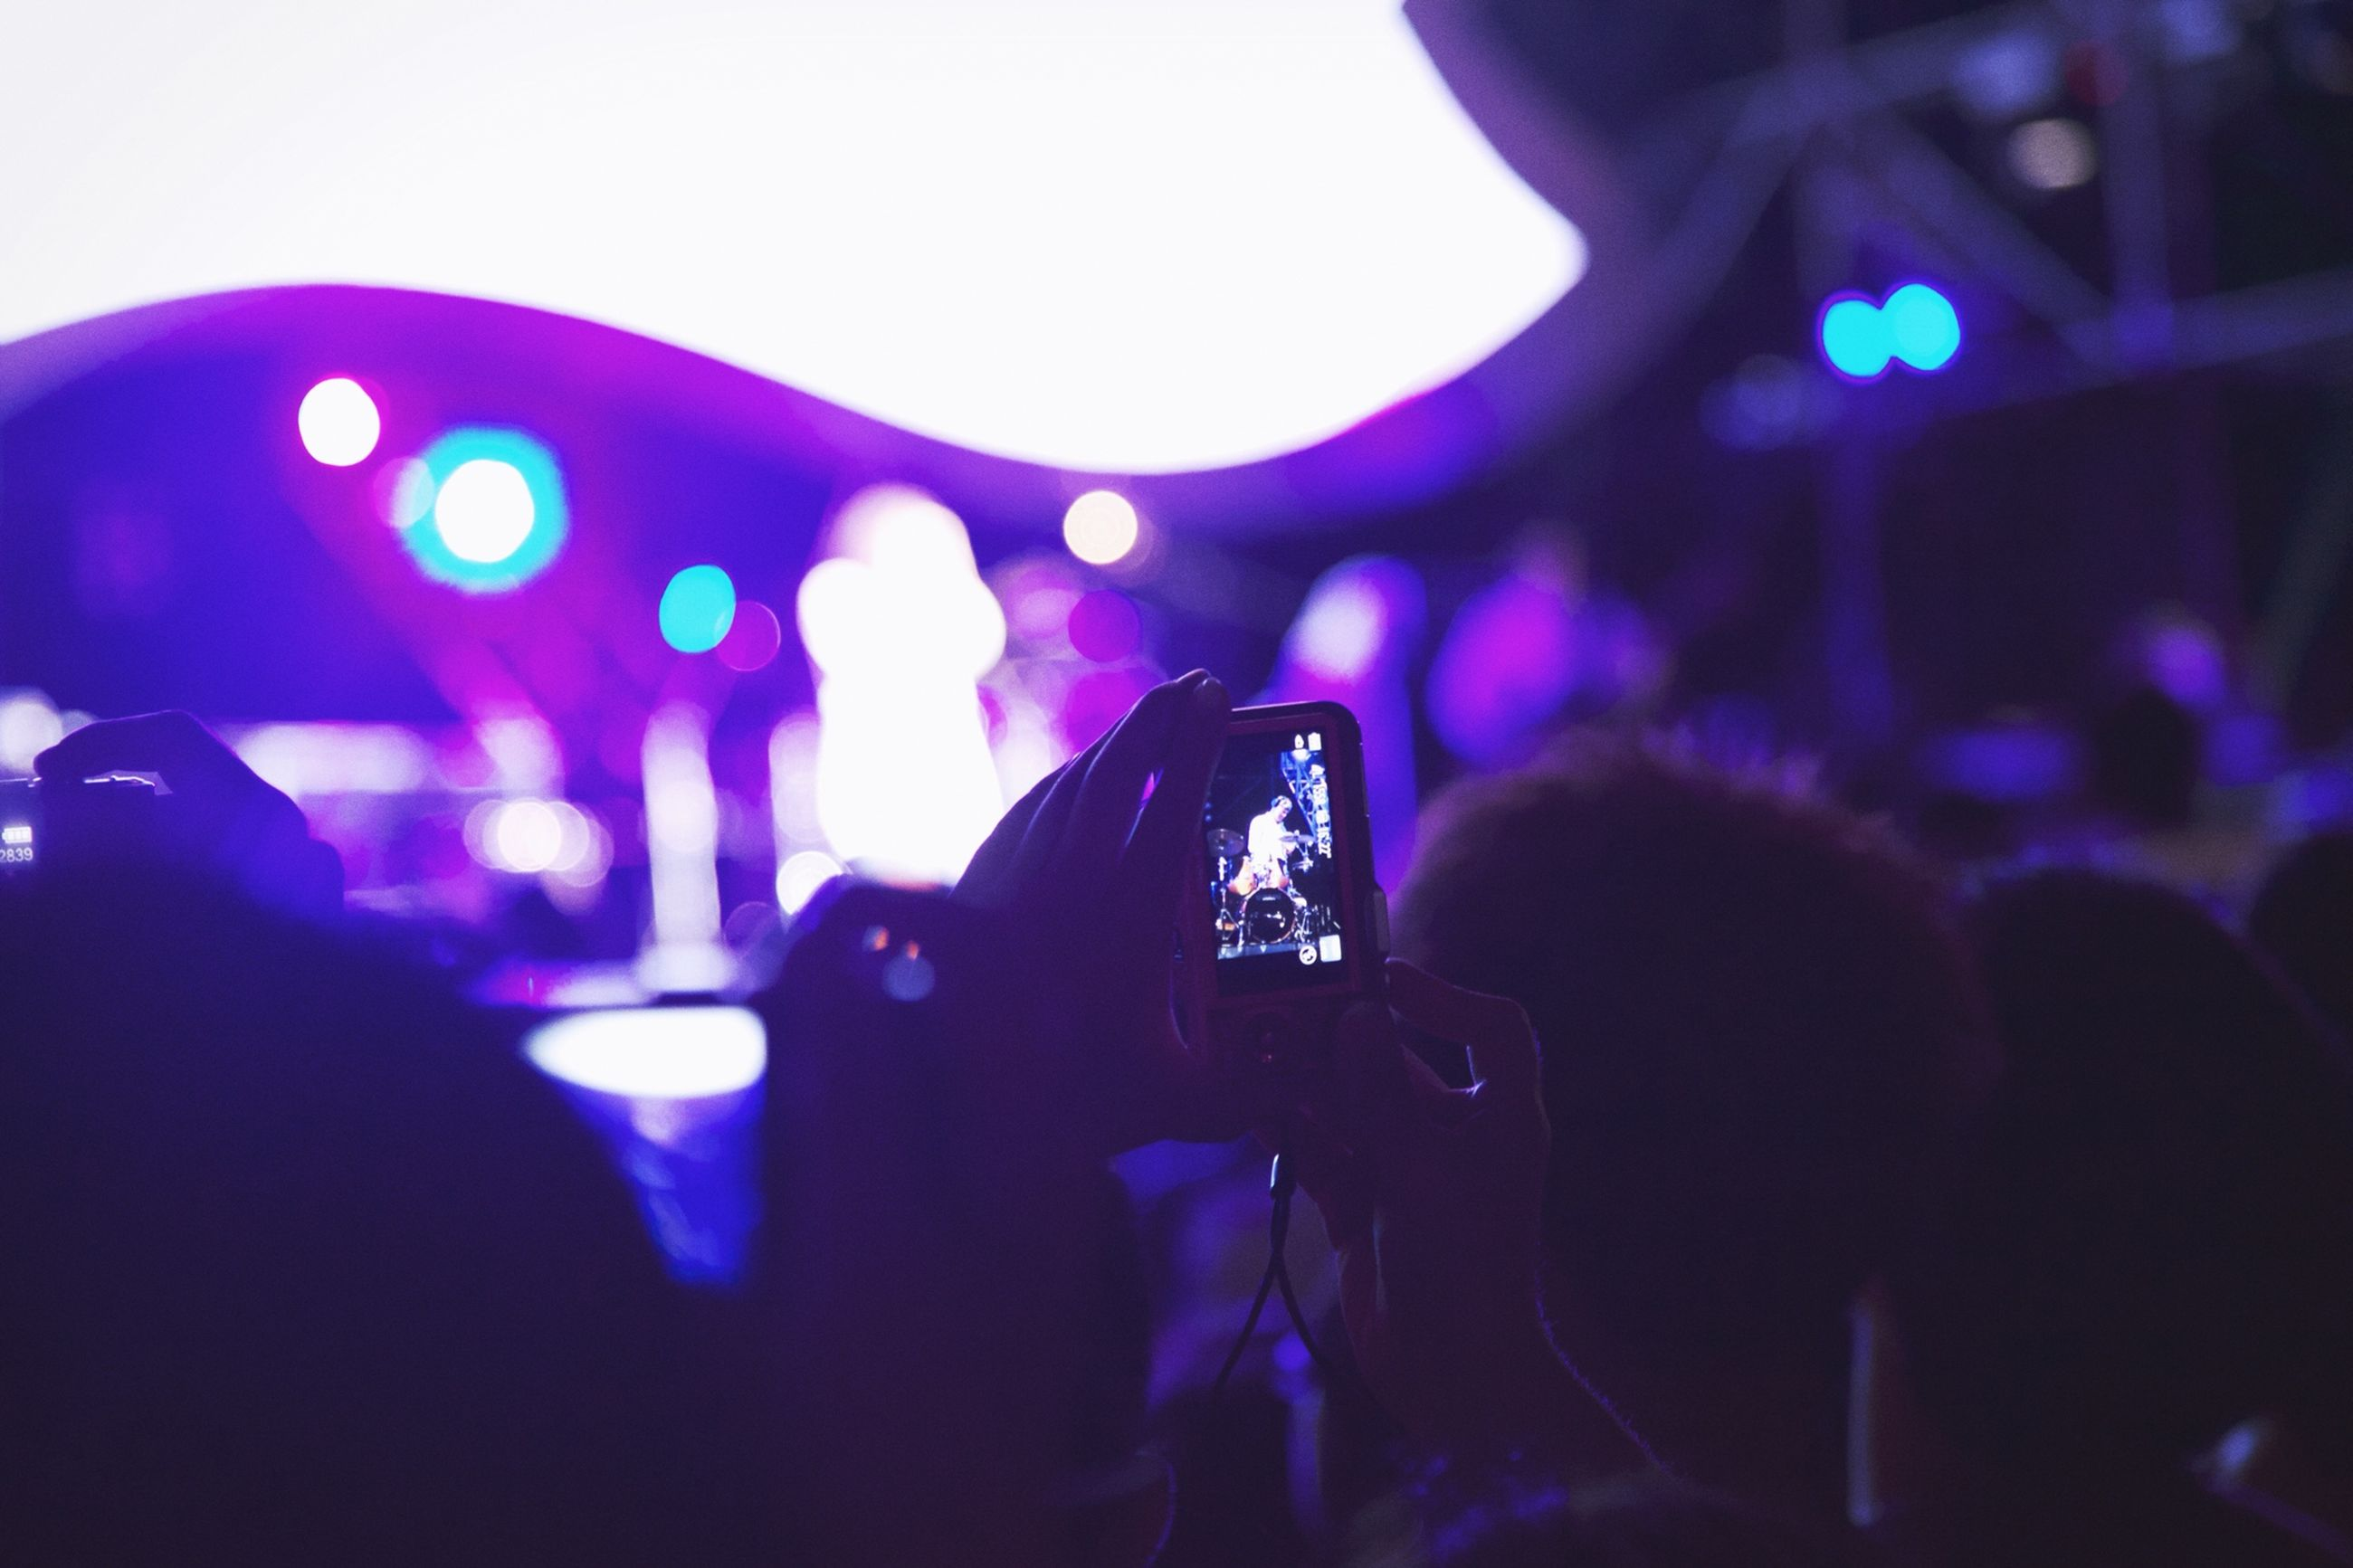 illuminated, arts culture and entertainment, indoors, music, nightlife, leisure activity, lifestyles, large group of people, men, enjoyment, performance, crowd, night, youth culture, fun, light - natural phenomenon, nightclub, person, stage - performance space